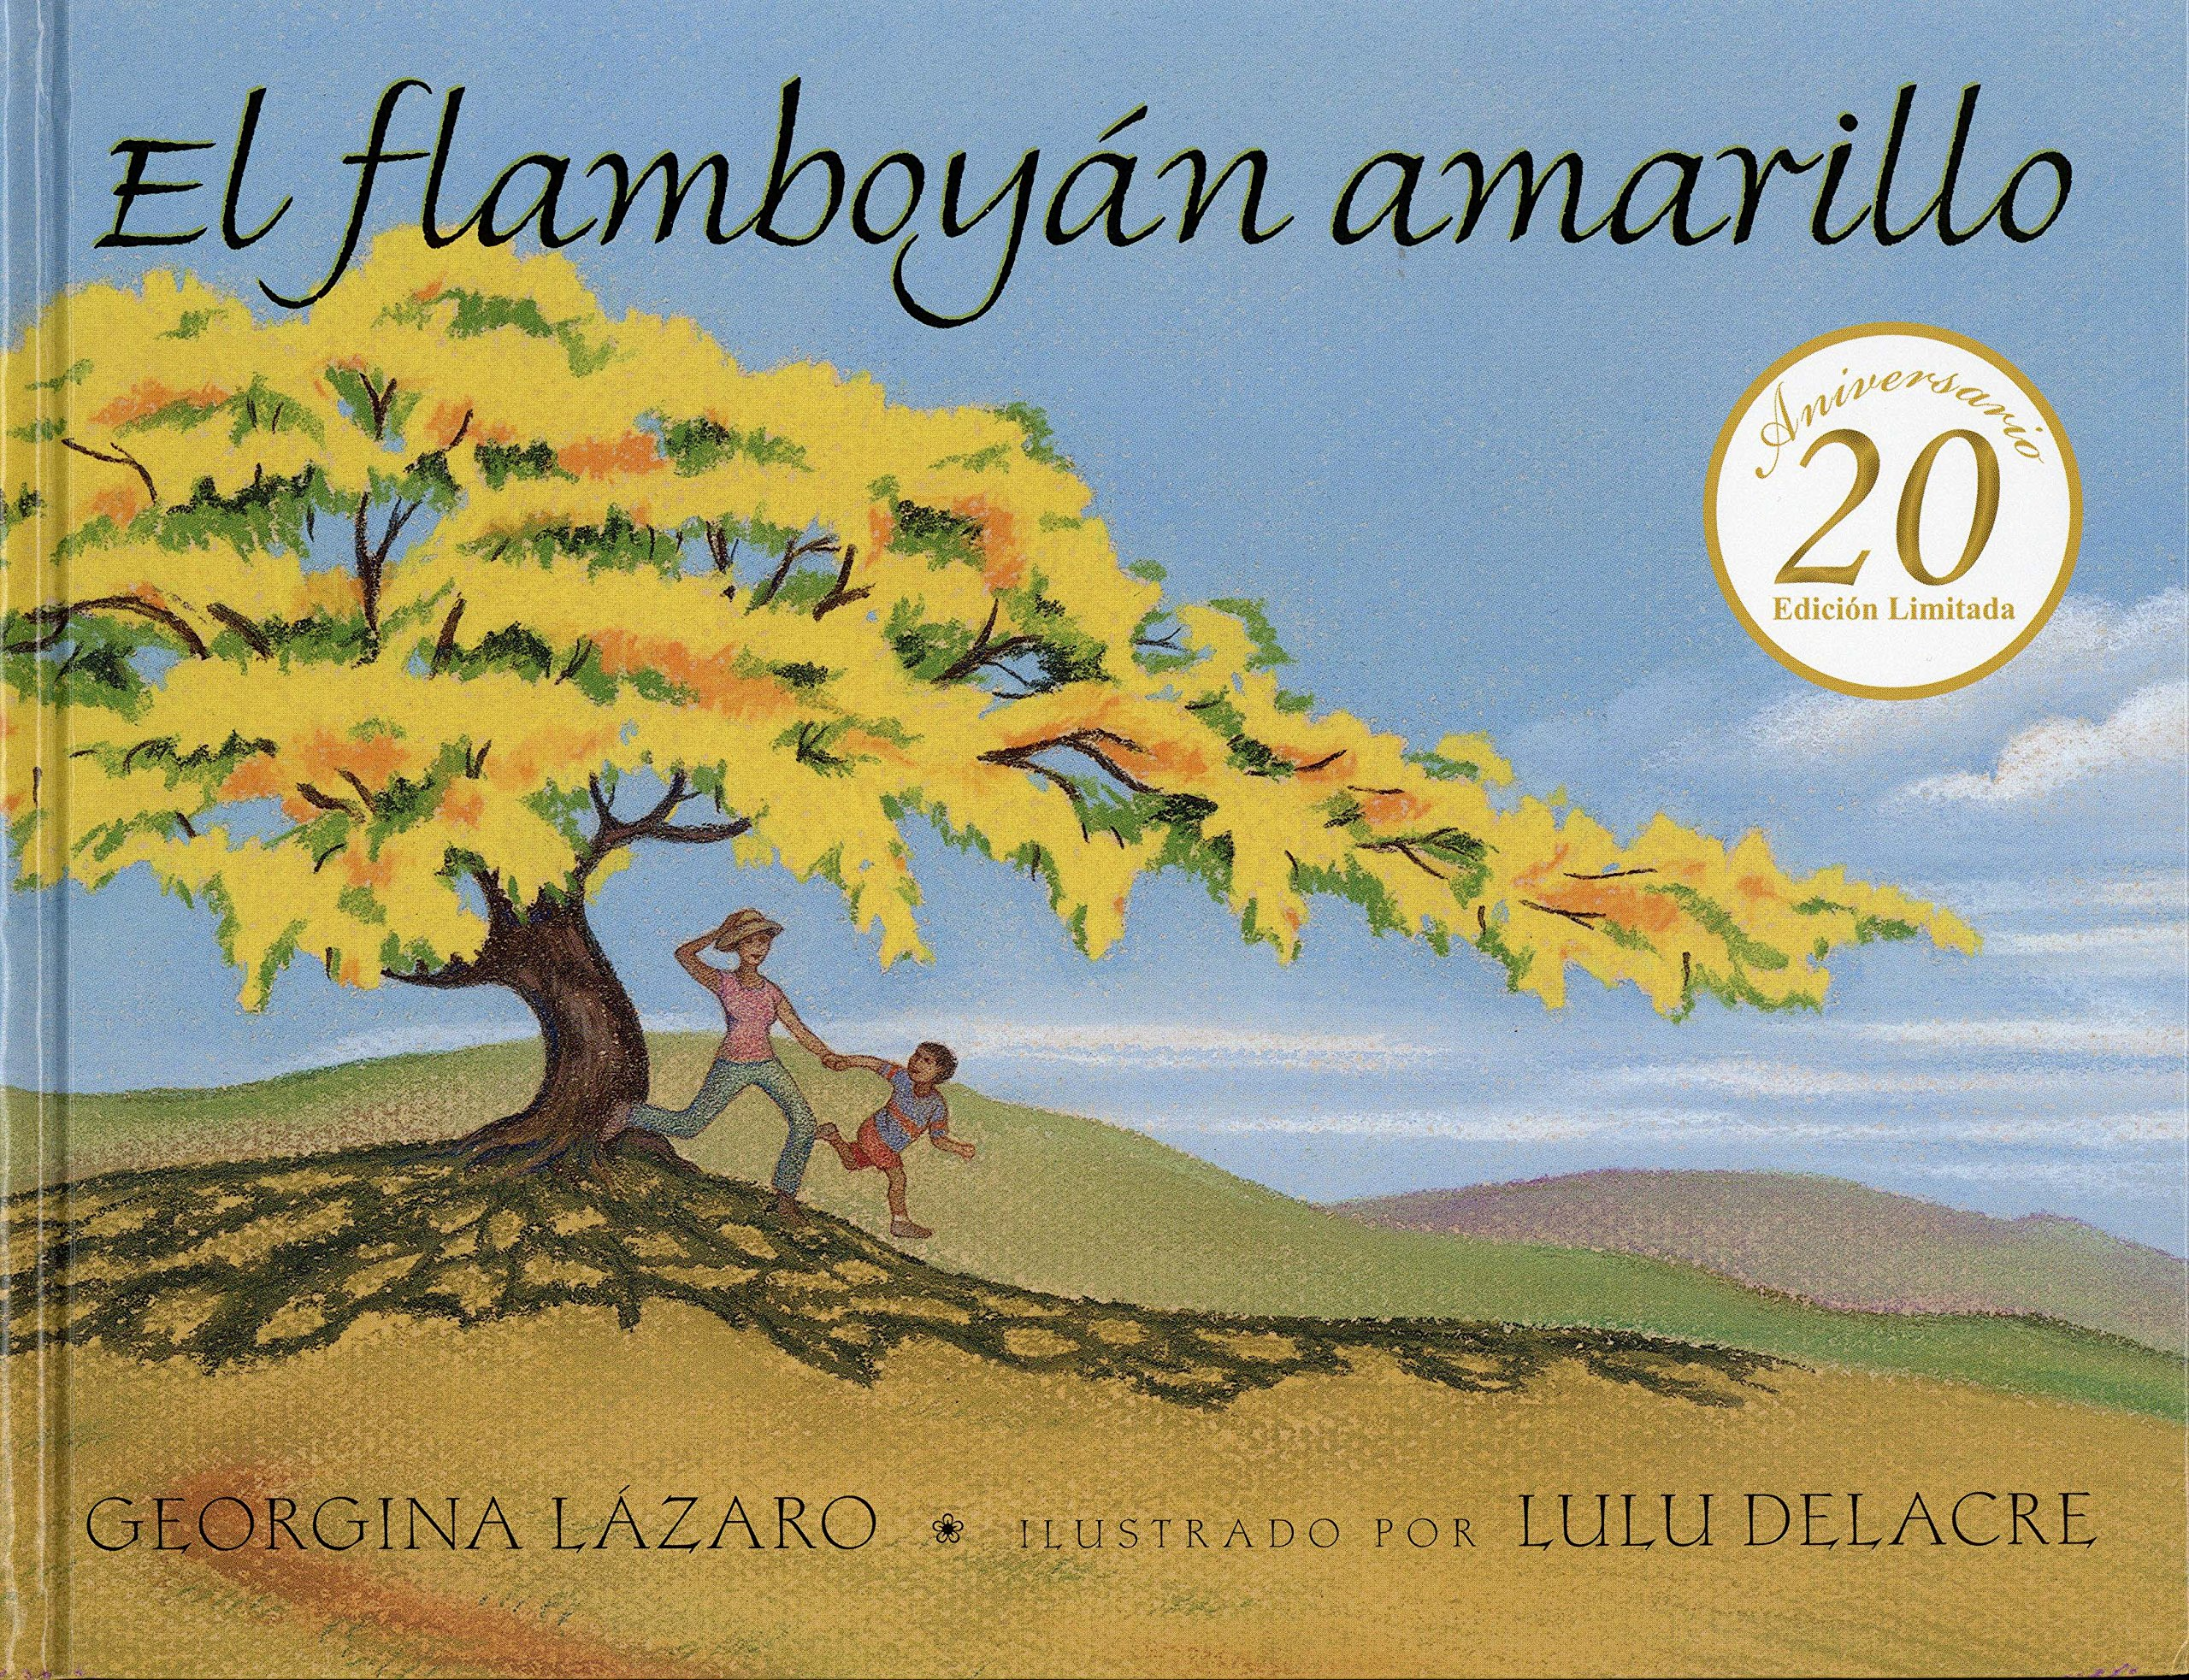 El flamboyán amarillo 20th Anniversary Edition (Spanish Edition) pdf epub